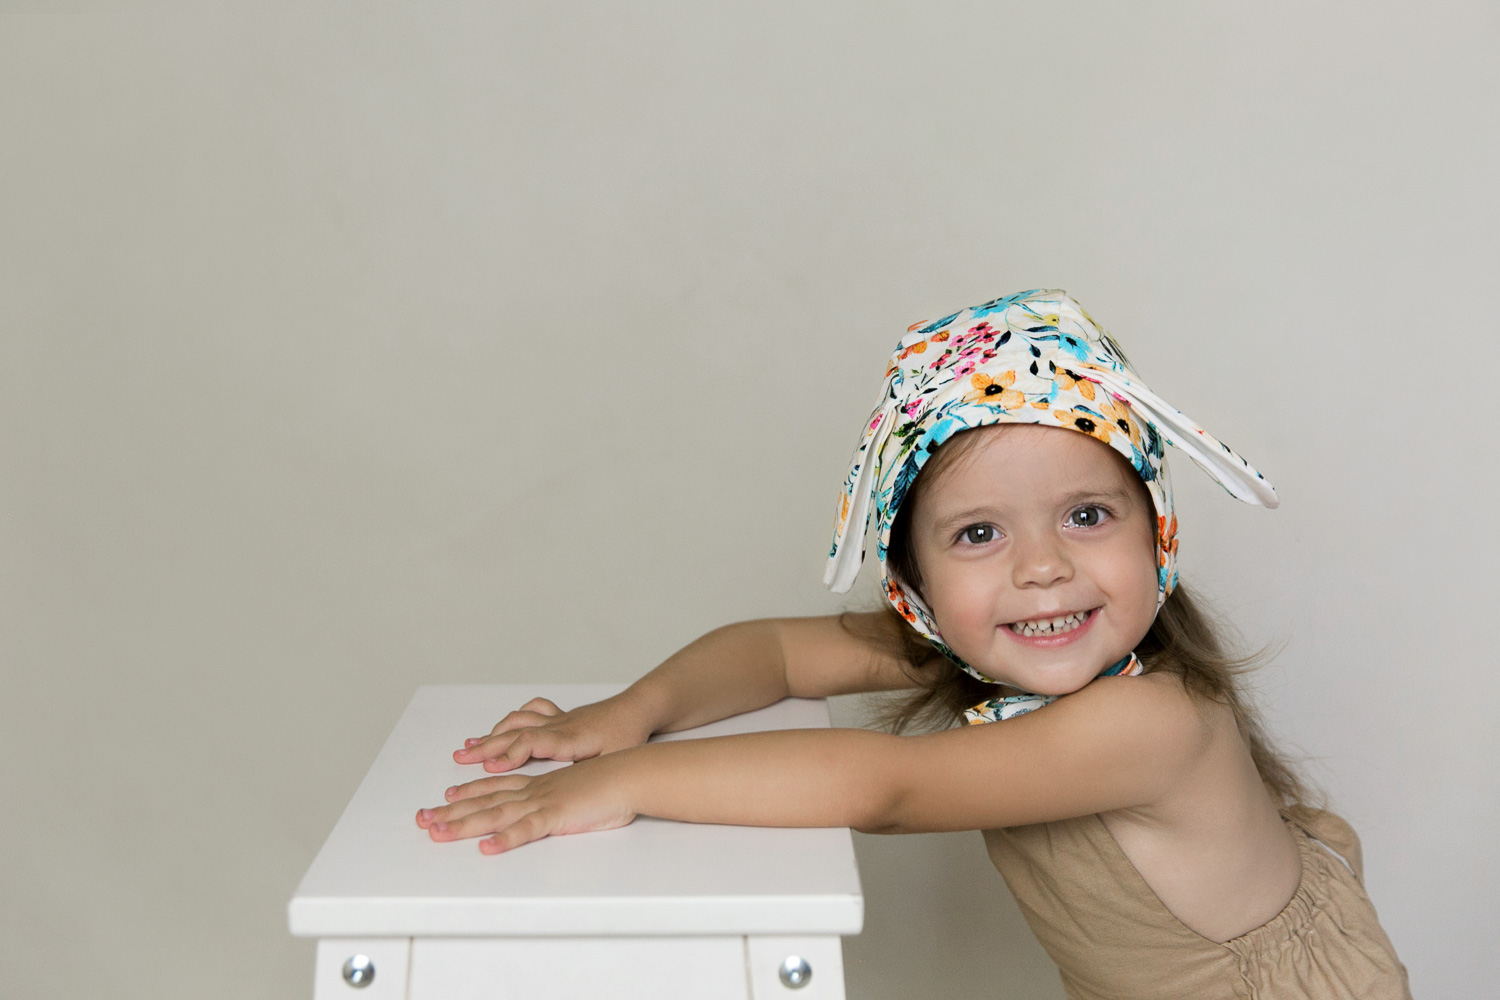 floral easter bunny bonnet product photo shoot commercial photography gold coast topknot girl